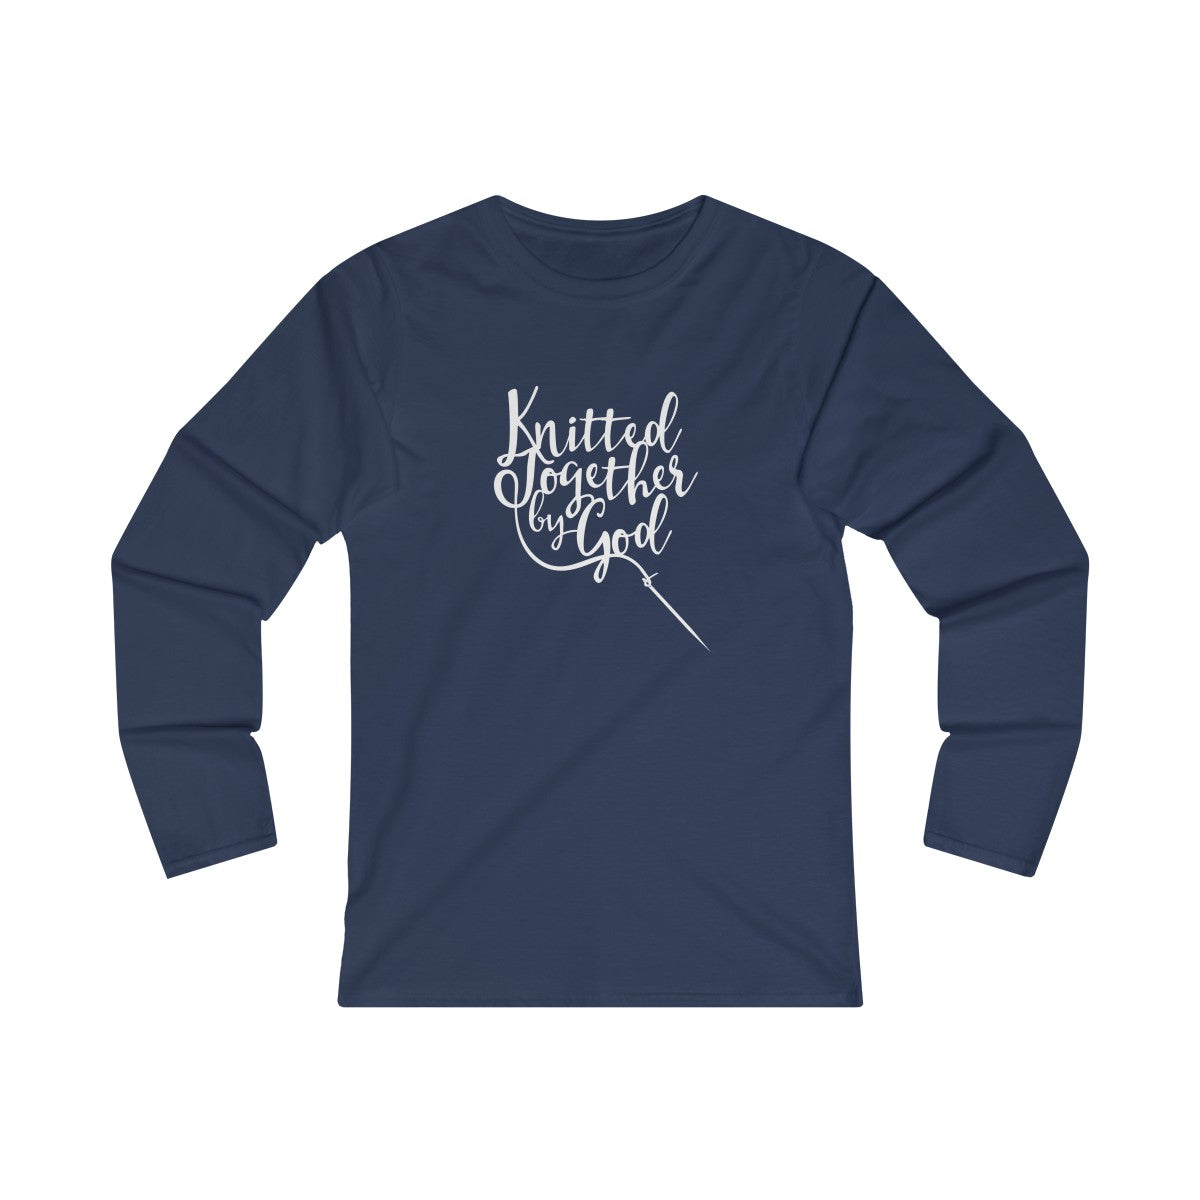 Knitted Together By God Women's Fitted Long Sleeve Tee